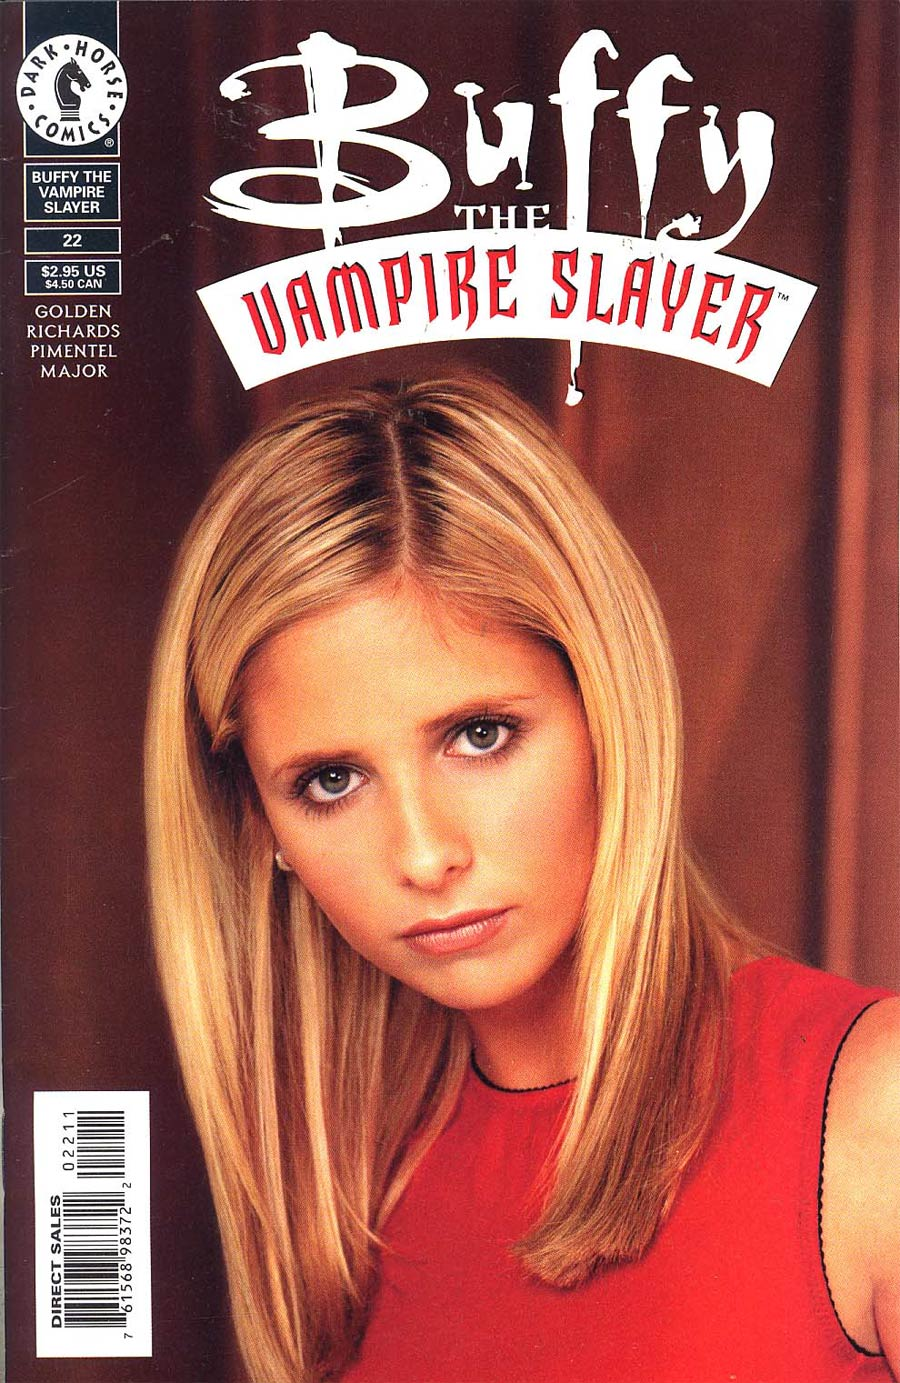 Buffy The Vampire Slayer #22 Photo Cvr